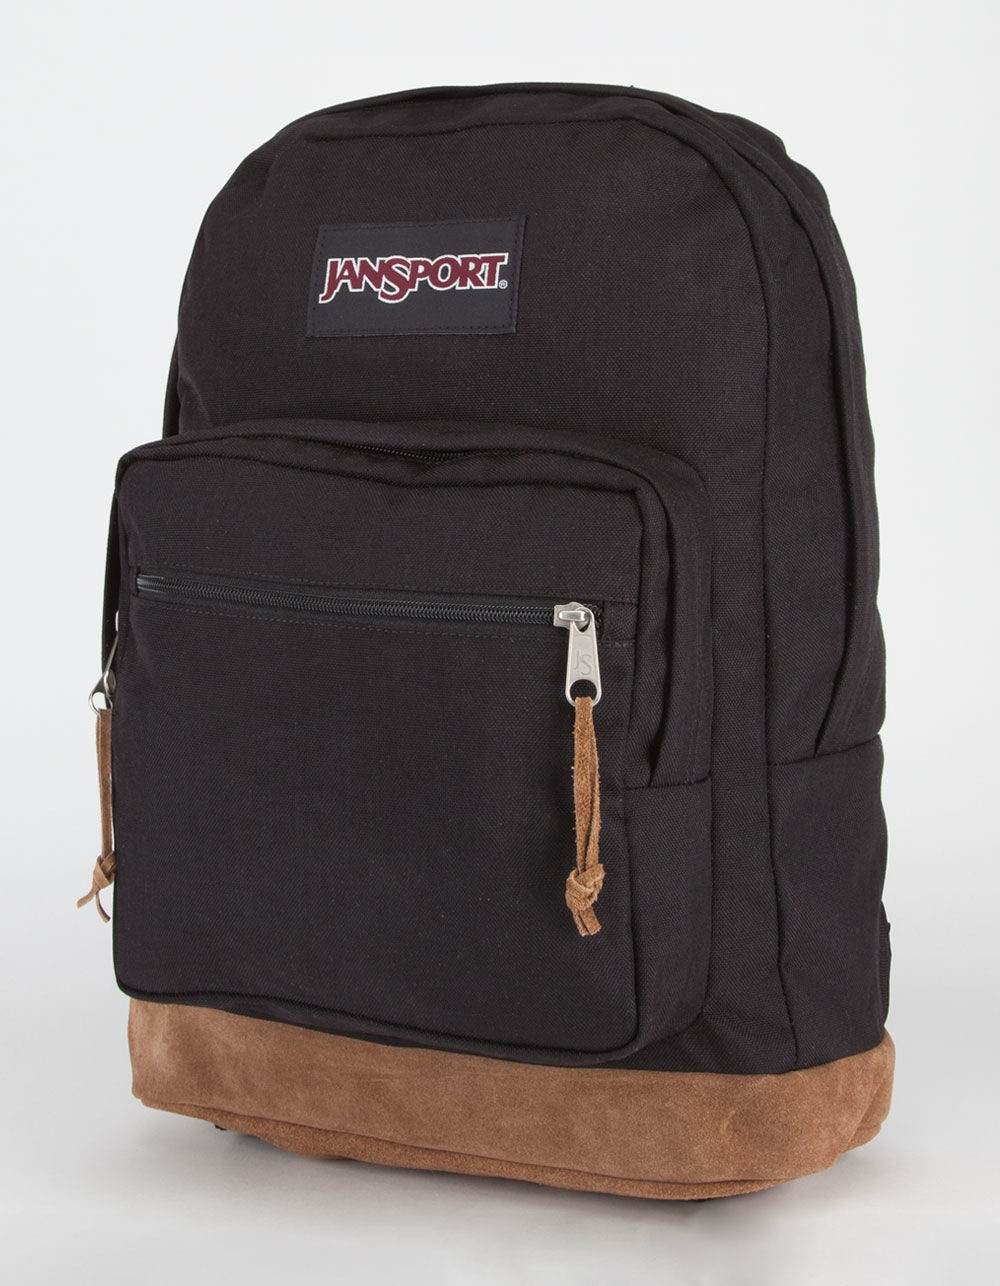 limited sale jansport right pack backpack black best price last chance